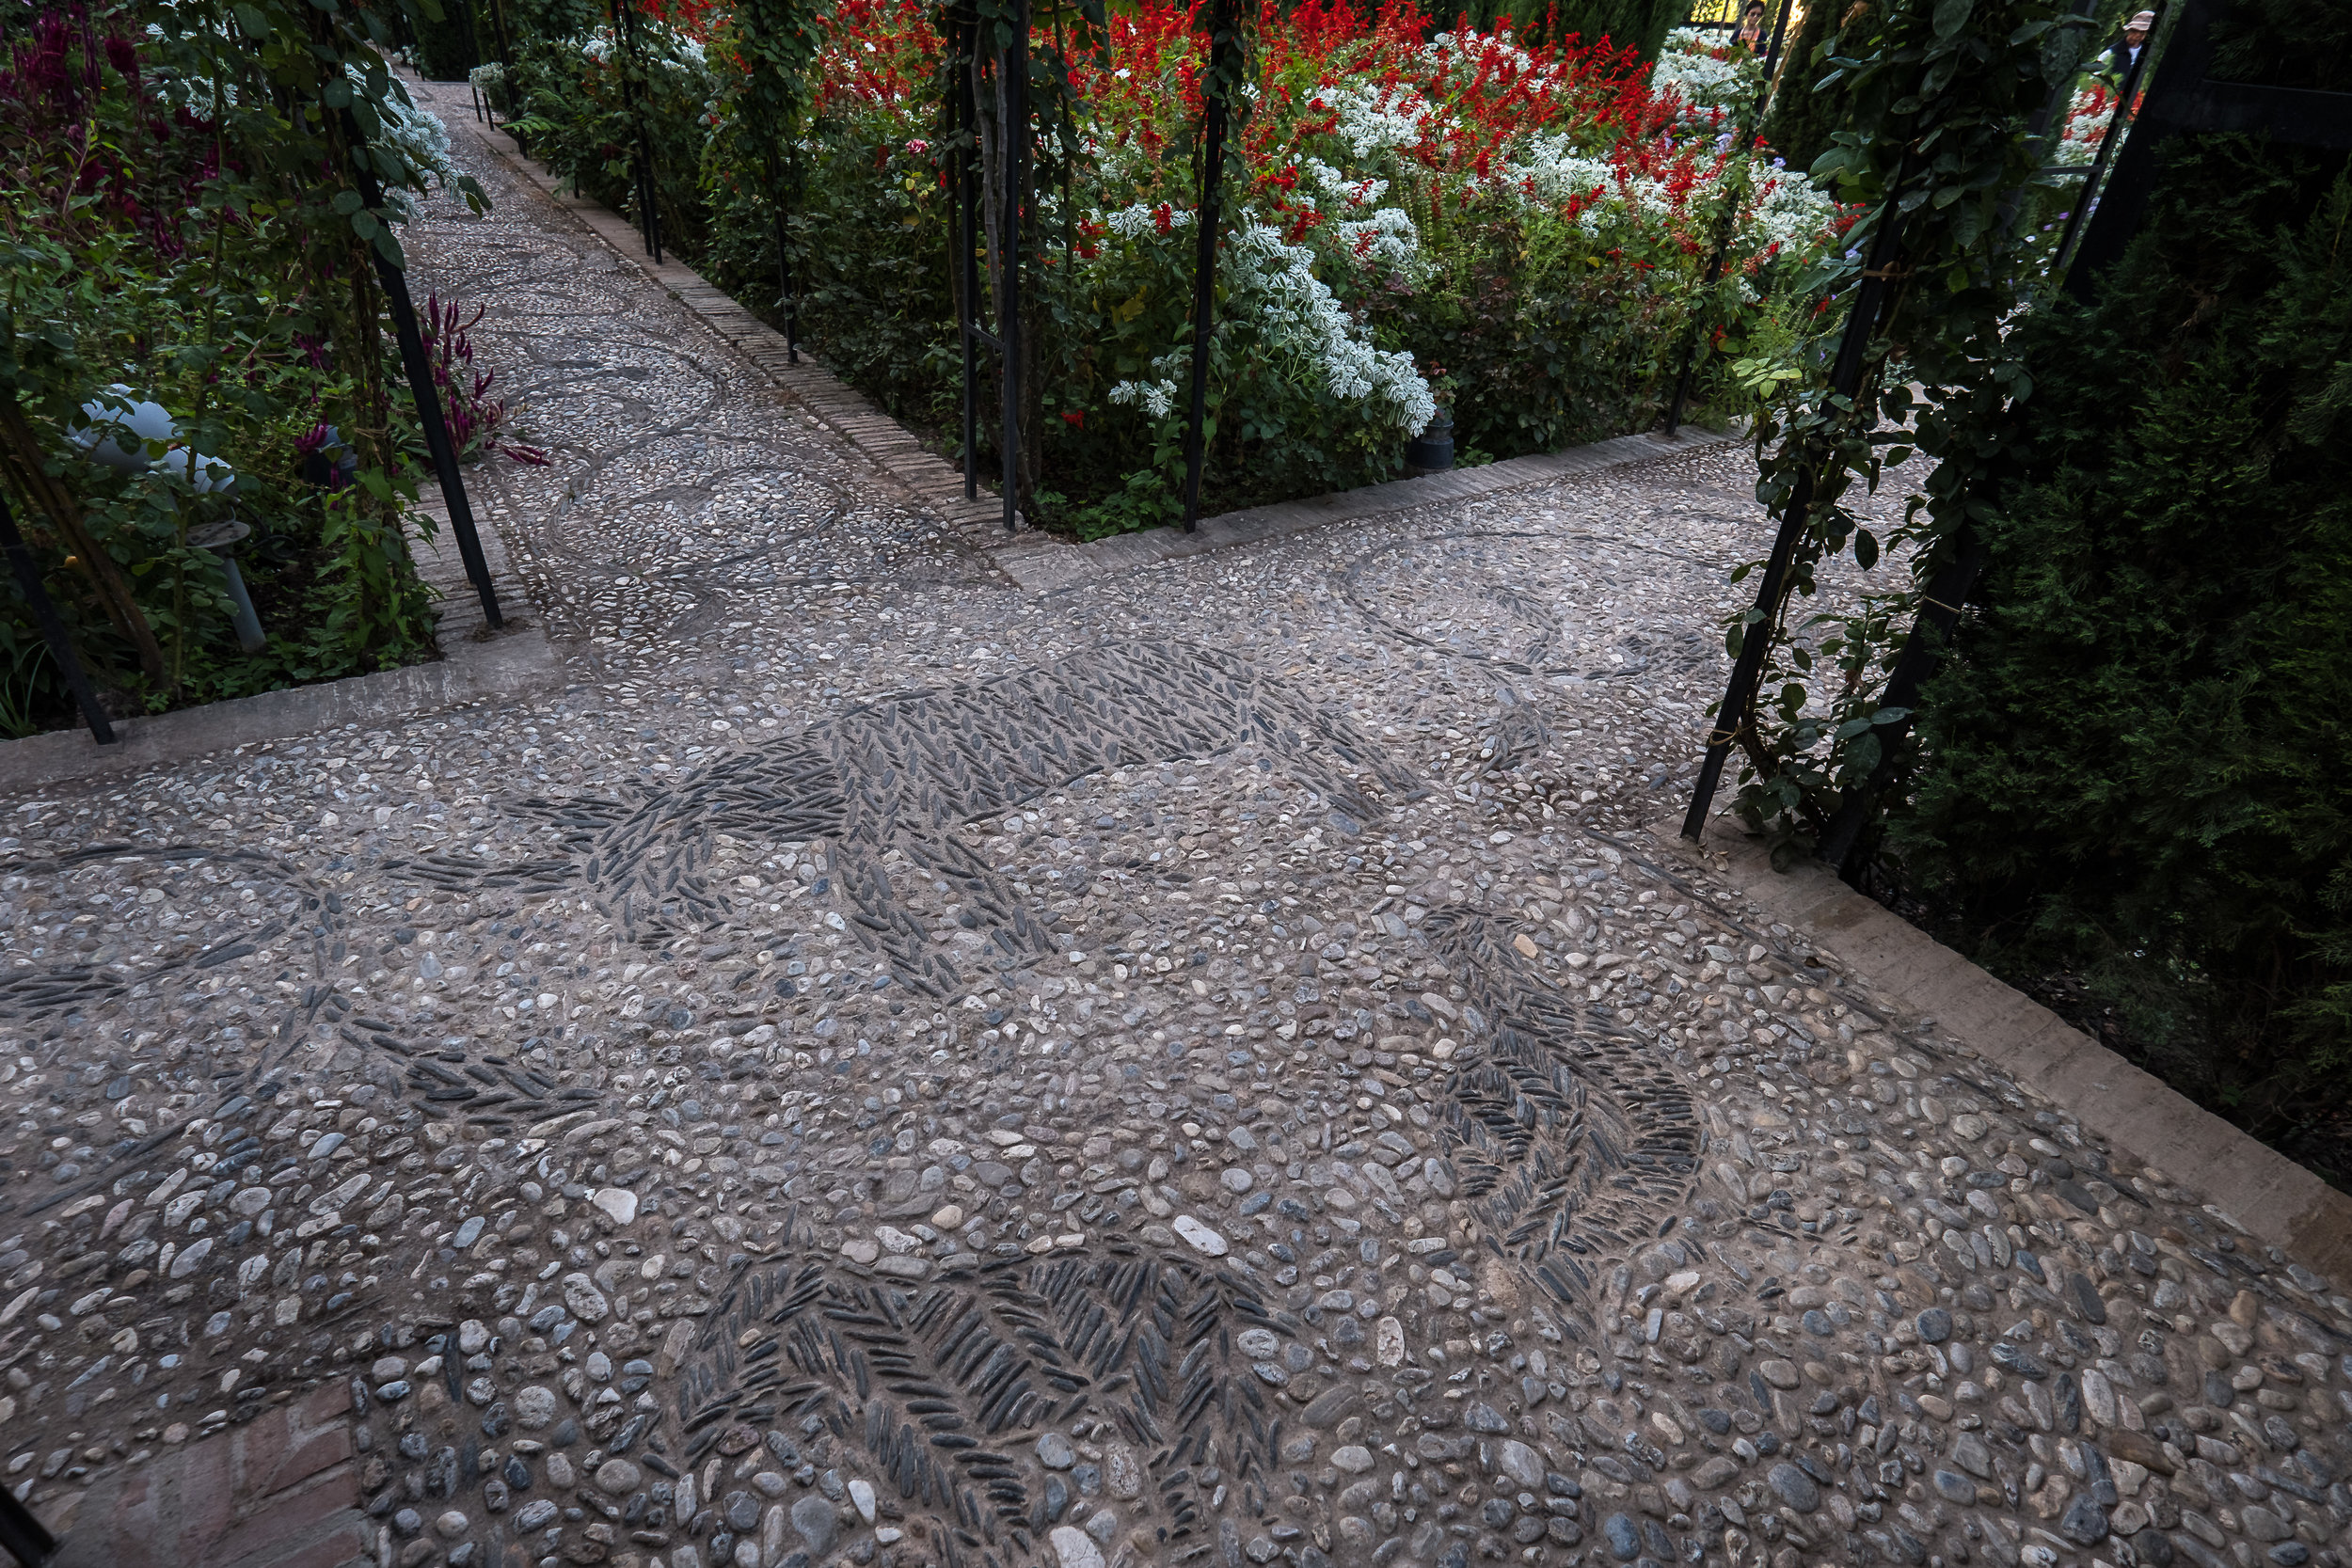 animal mosaics in smooth stones near Generalife